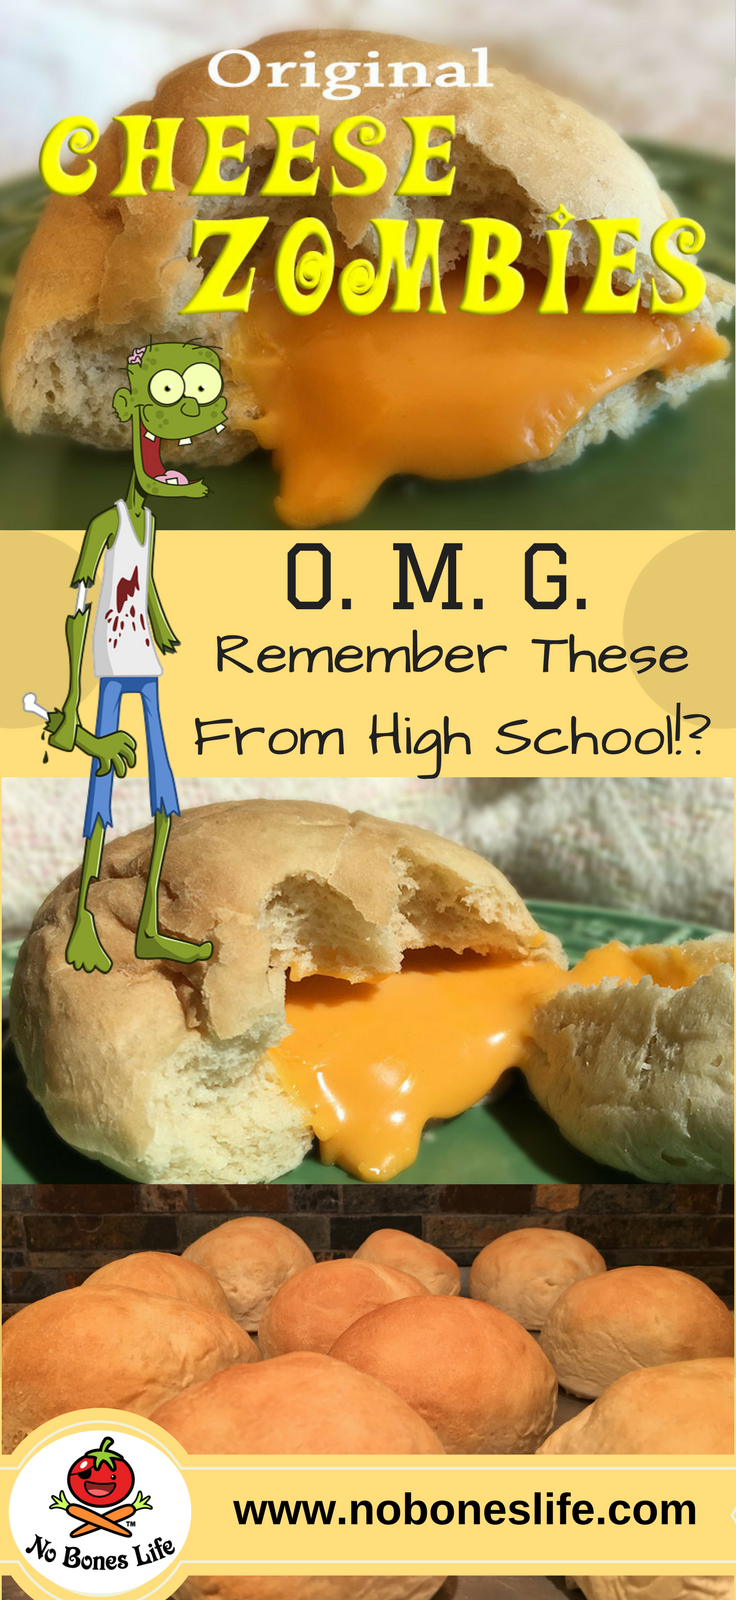 The Zombies are back!! Get your provisions and be prepared... to make and enjoy this nostalgic cheese filled snack!